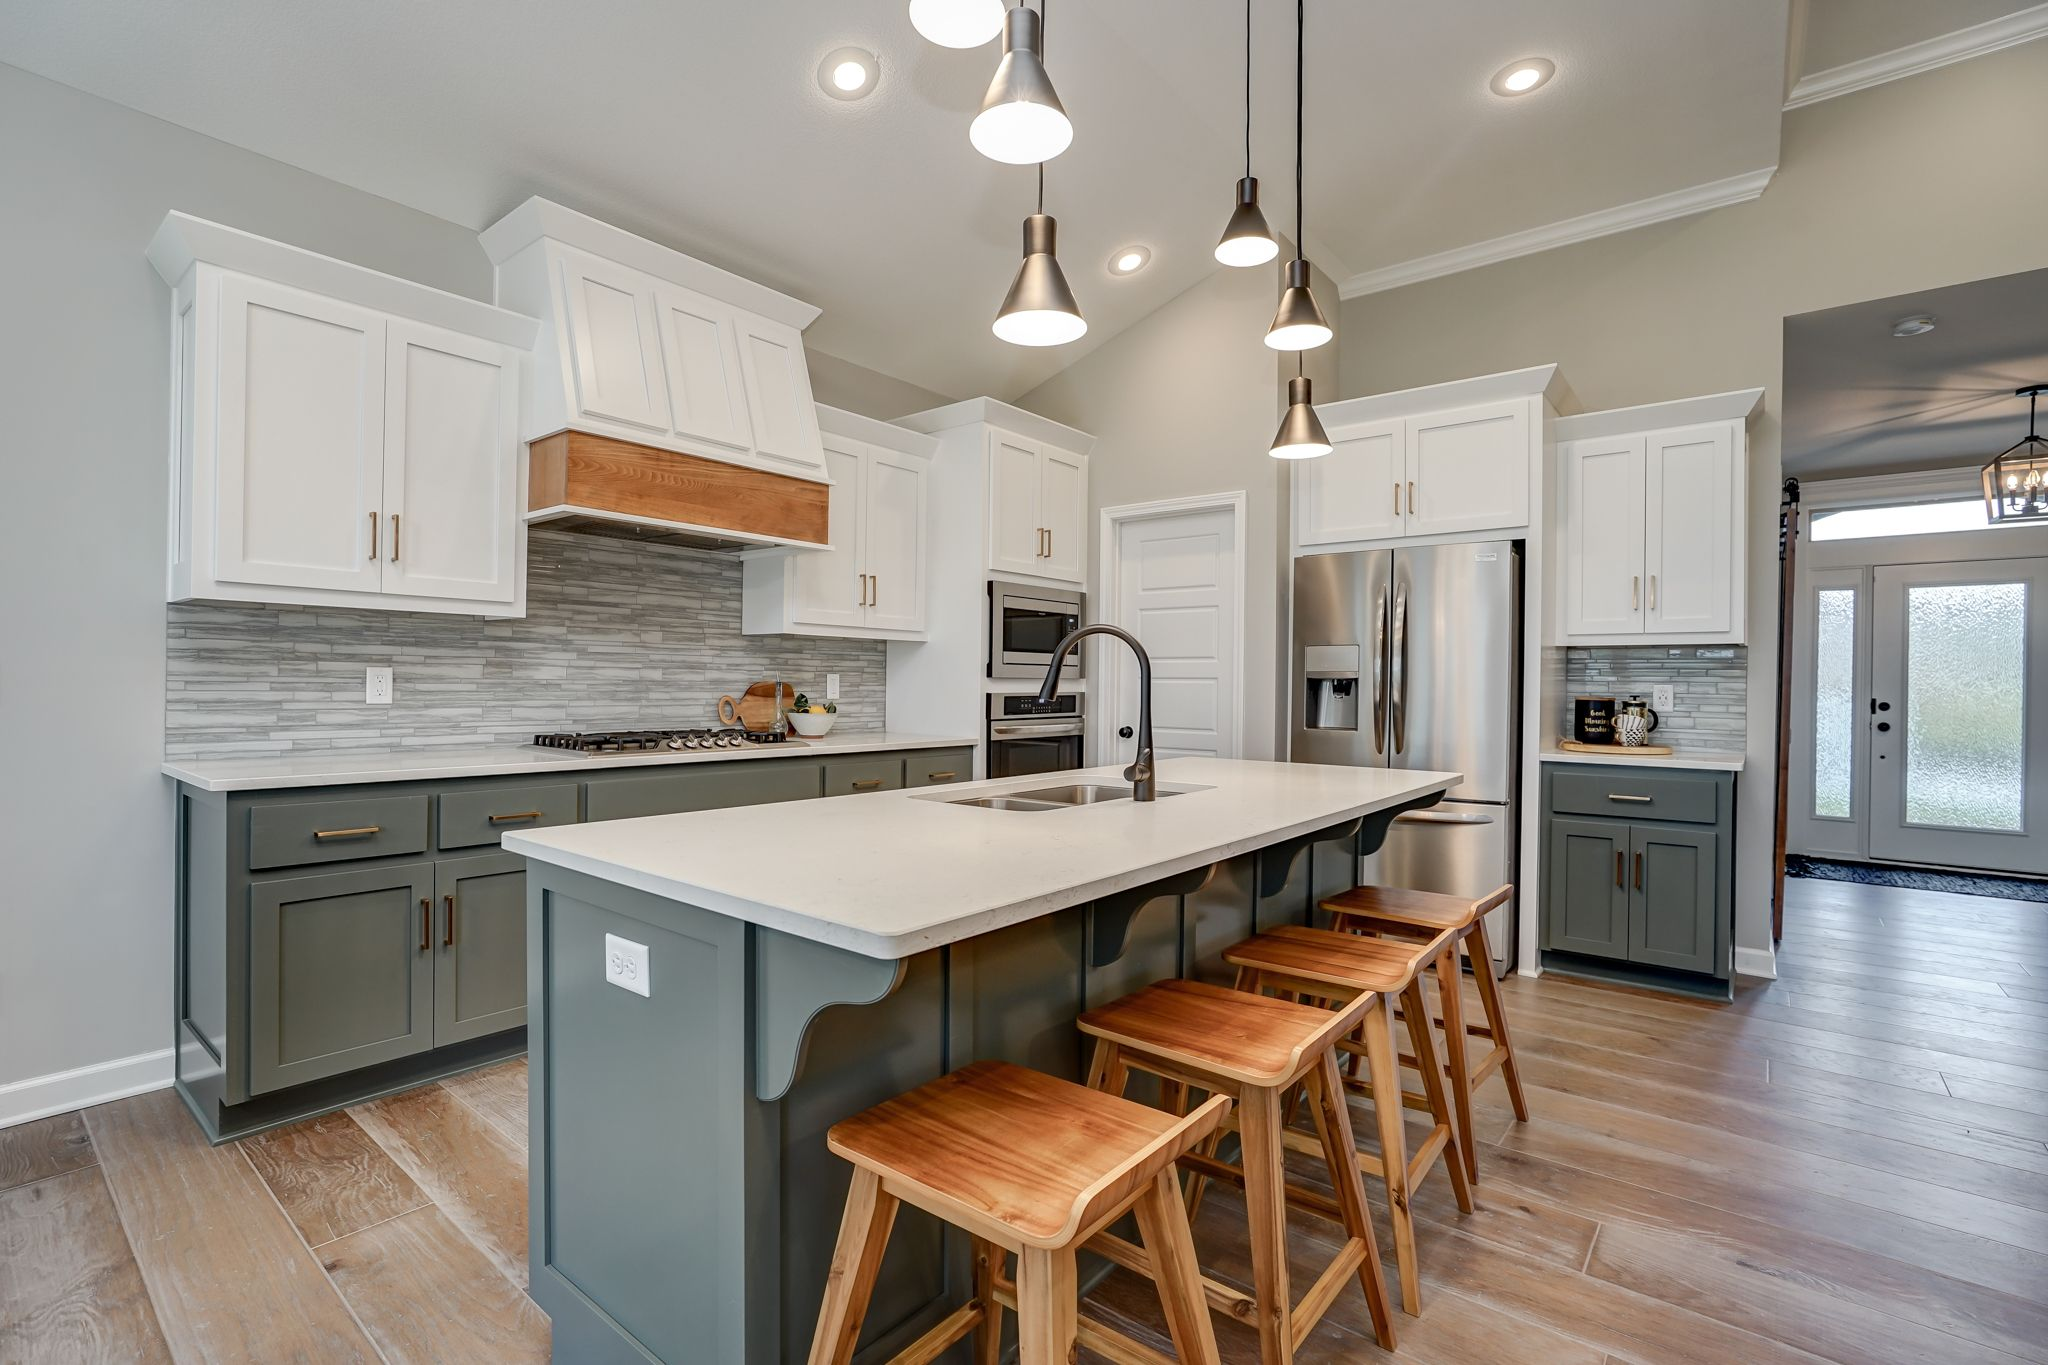 Kitchen featured in the Valentia By Summit Homes in Kansas City, MO